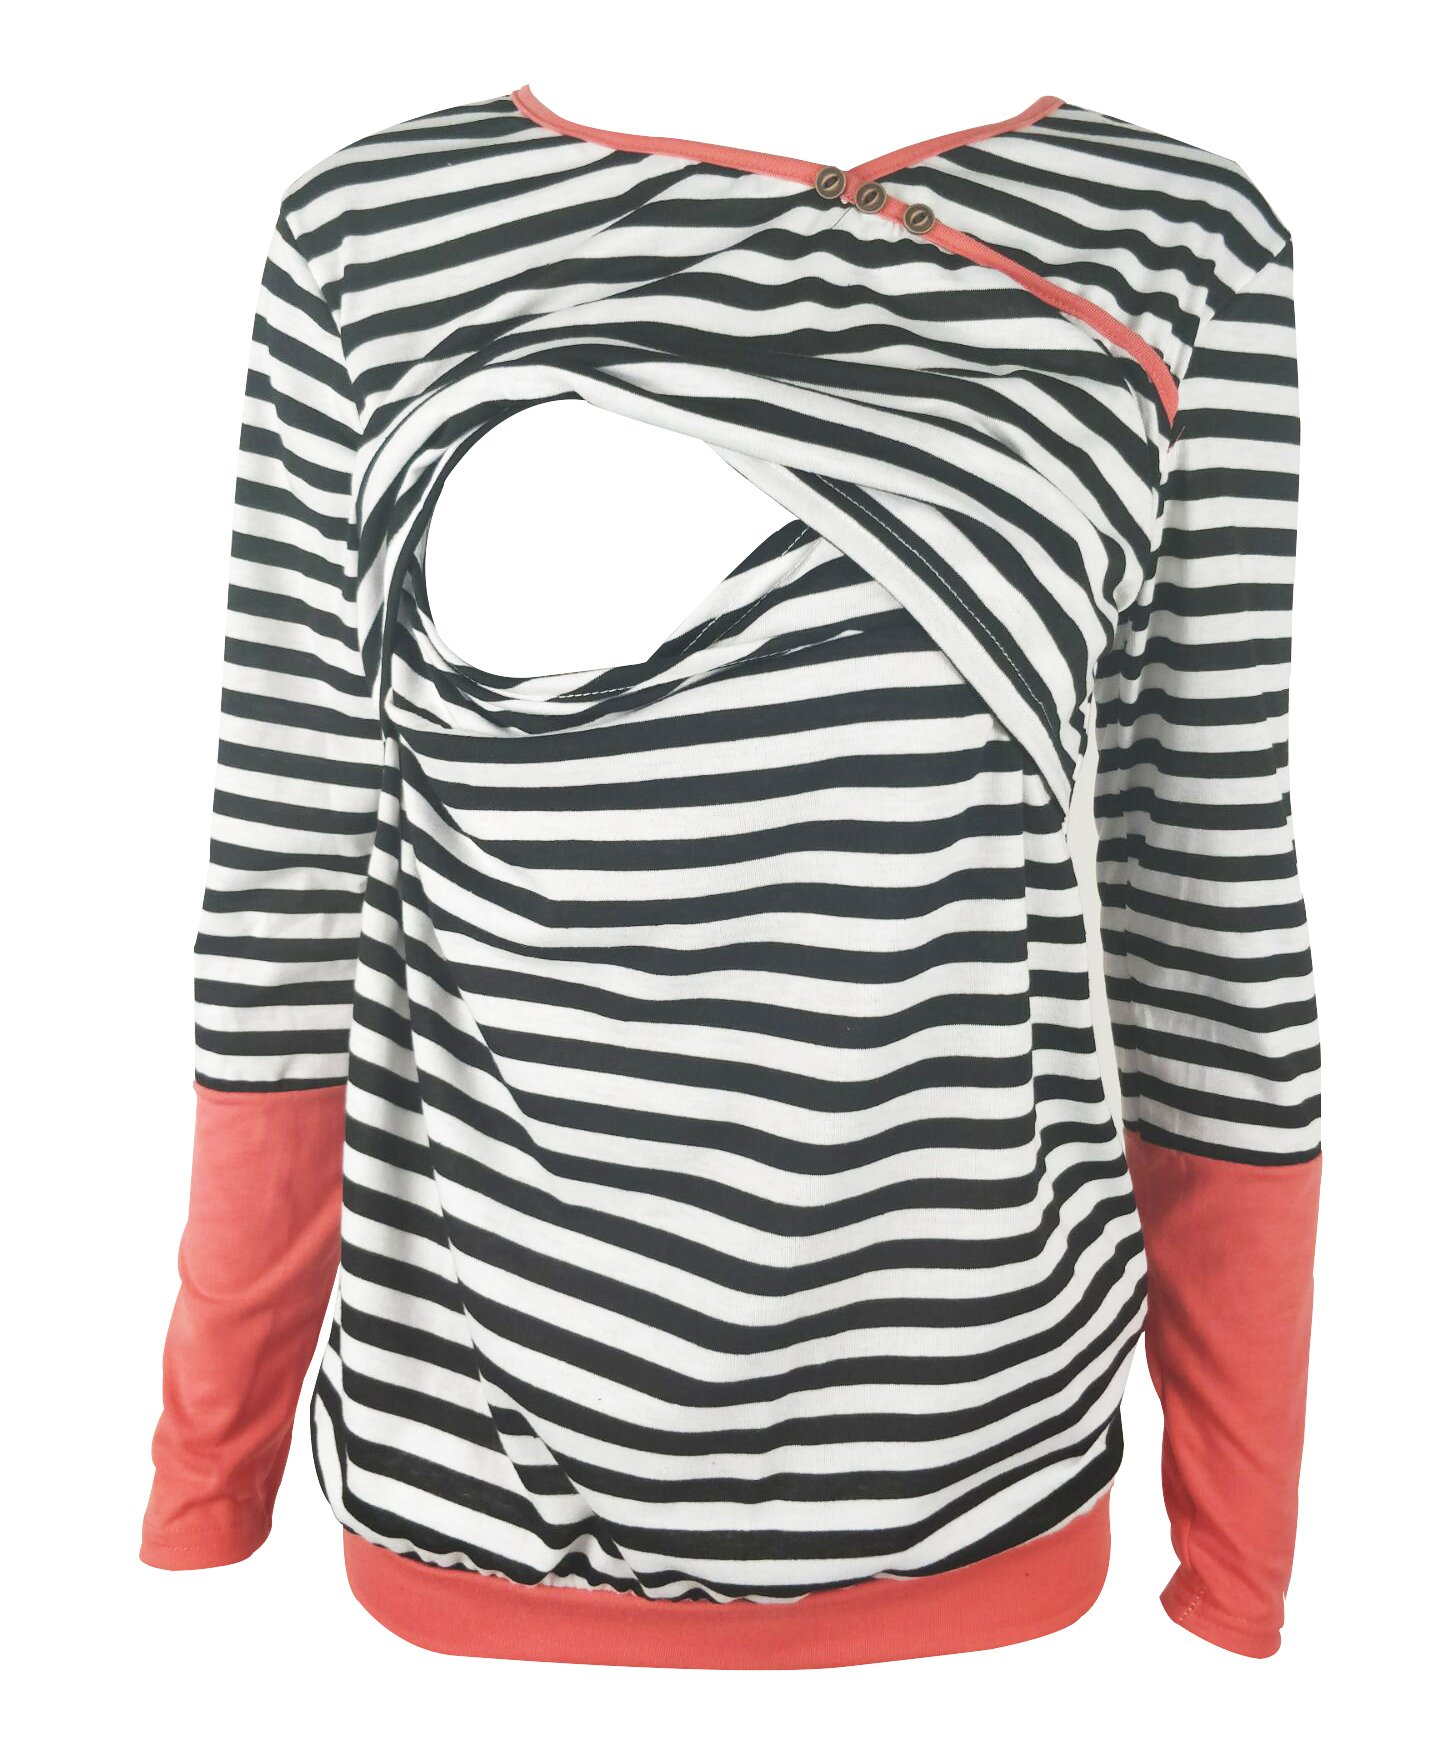 Chulianyouhuo Breastfeeding Shirt Striped Patchwork Long Sleeve Maternity Breastfeeding and Nursing Tops (XL, Coral)